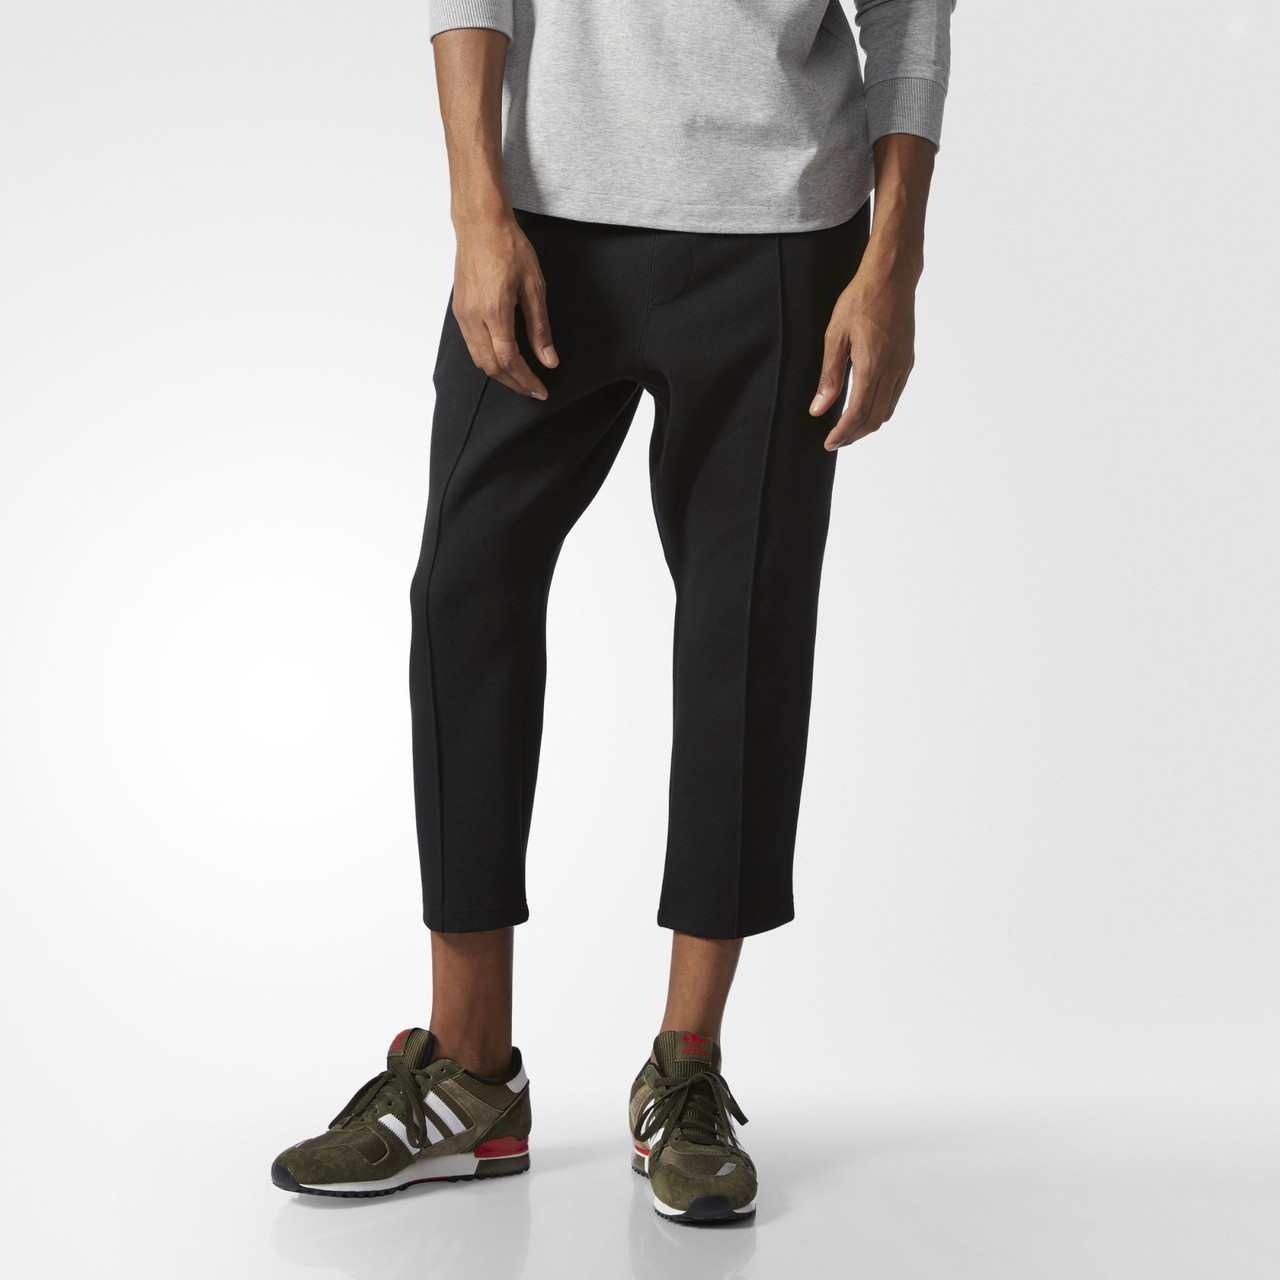 Мужские брюки Adidas Originals Instinct Cropped Pintuck (Артикул  BK0550) -  Интернет-магазин 71f6e5cbad1